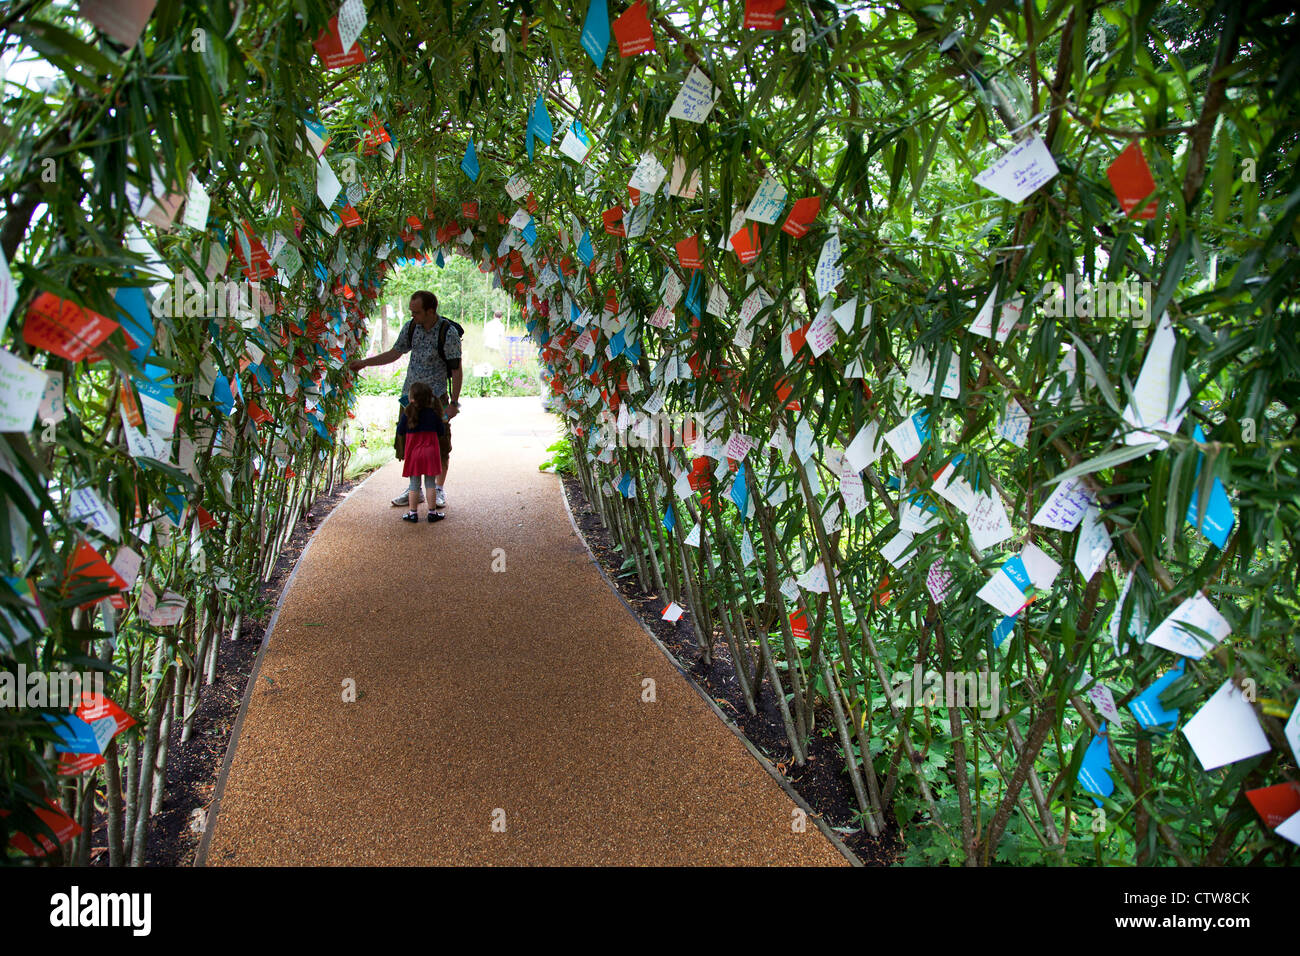 London 2012 Olympic Park in Stratford. Under an archway in one of the gardens, thousands of messages of good will - Stock Image